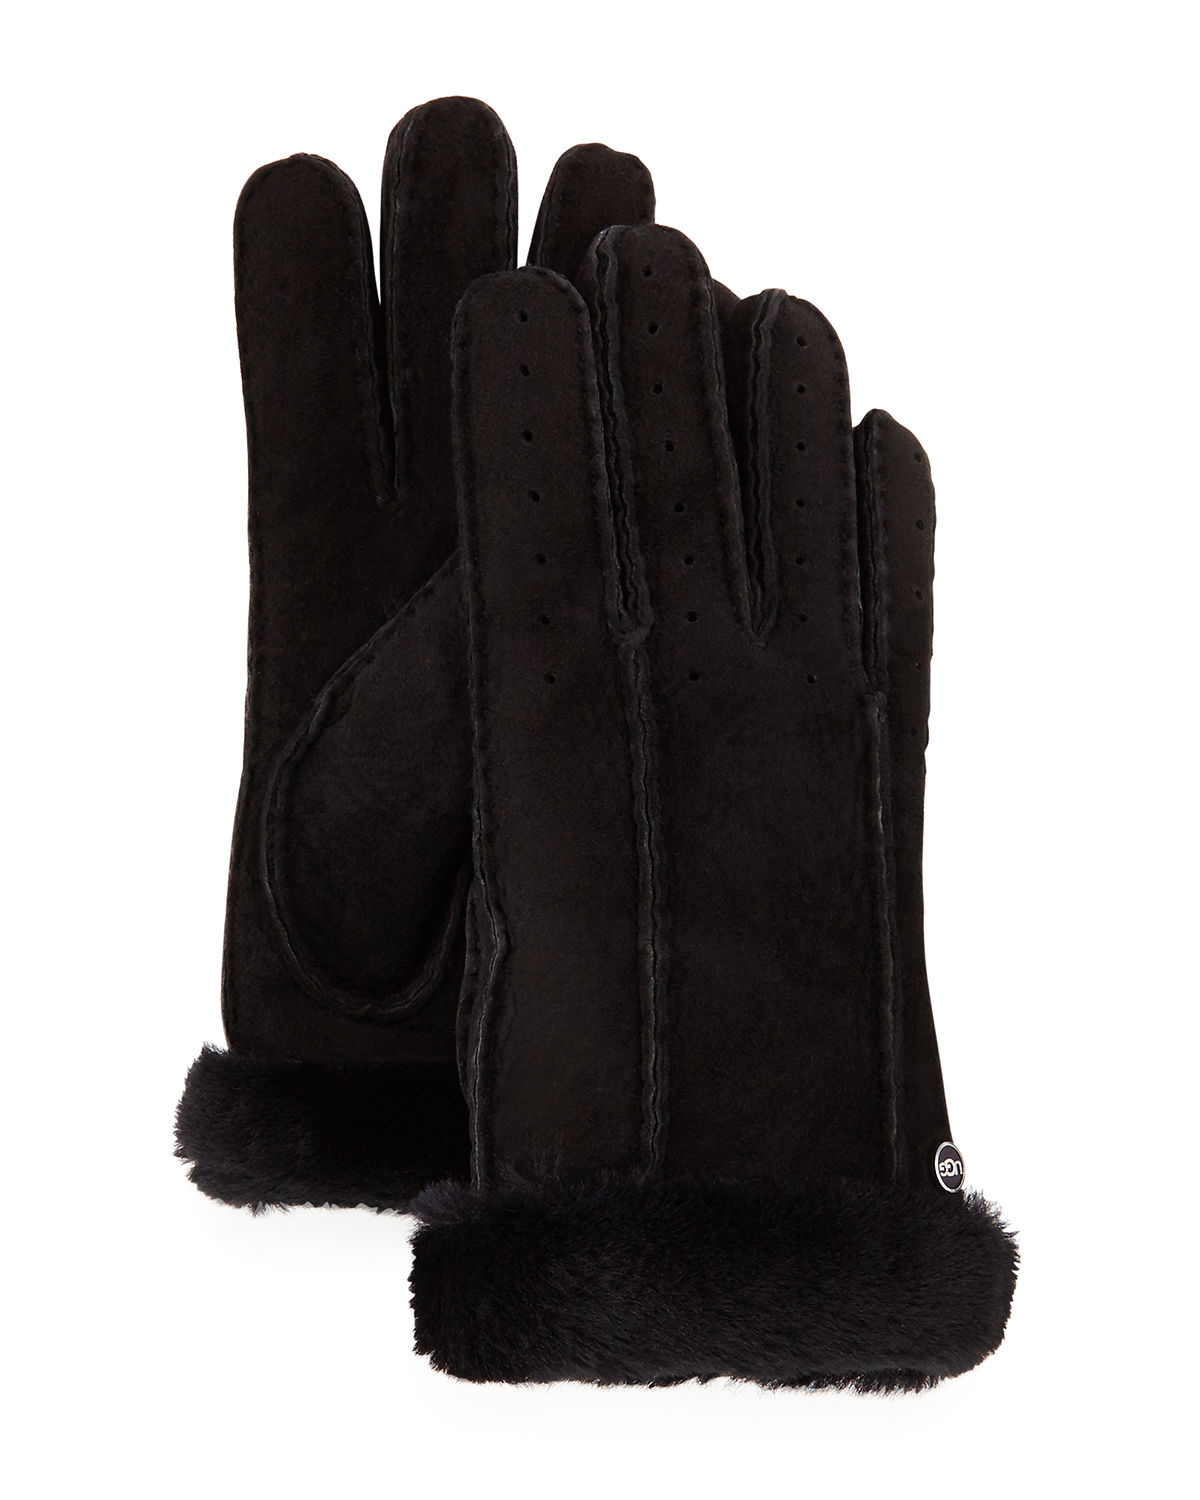 Womens leather gloves australia -  Ugg Clic Leather Smart Glove In Black For Men Save 9 Lyst